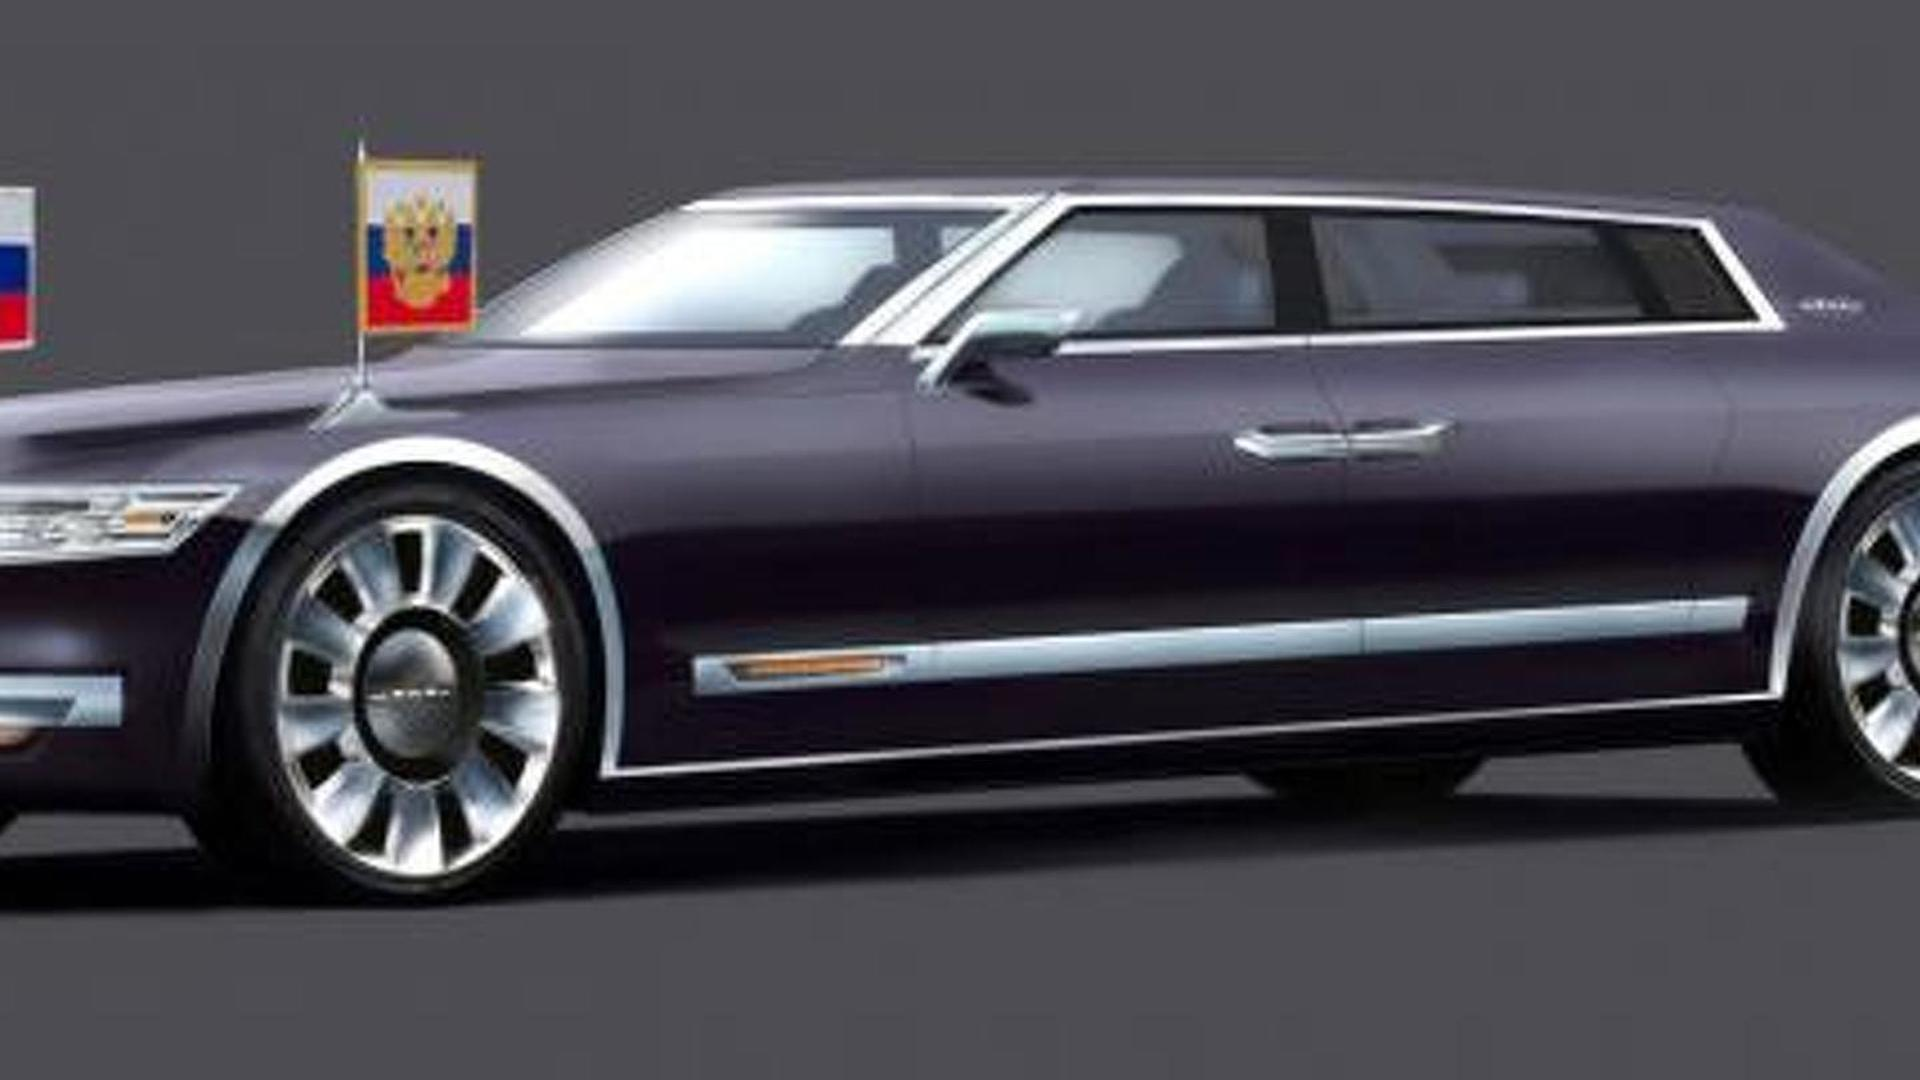 Limo For Sale >> Marussia asks fans to create a ZiL-inspired limo for Vladimir Putin